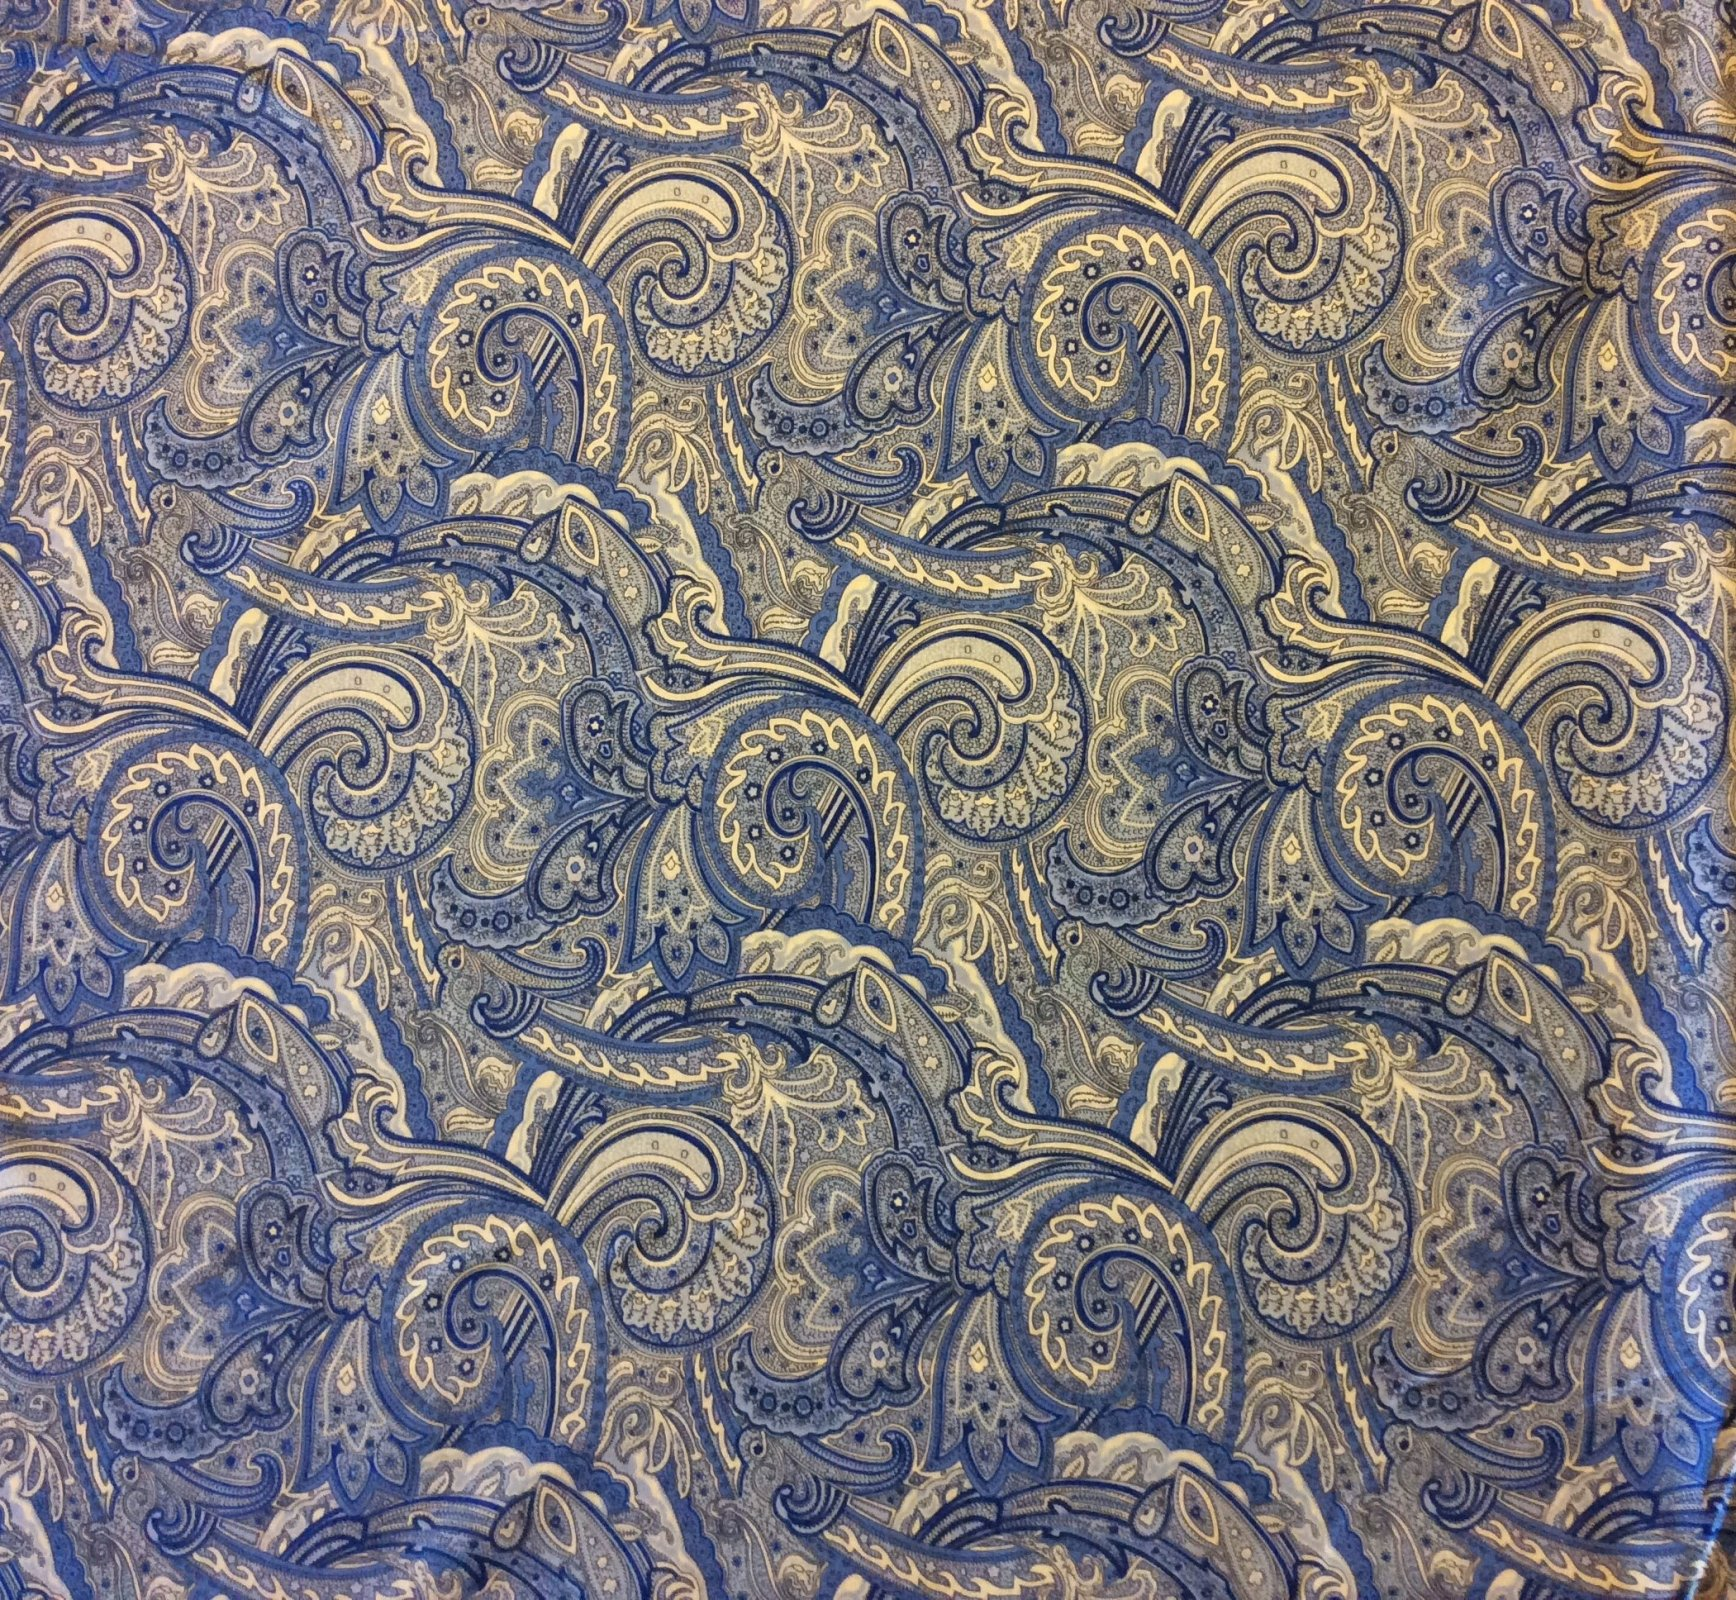 FAT QUARTER! Blue Paisley Swirl French Provincial Boteh Persian Abstradt Cotton Quilt Fabric RPFBE03